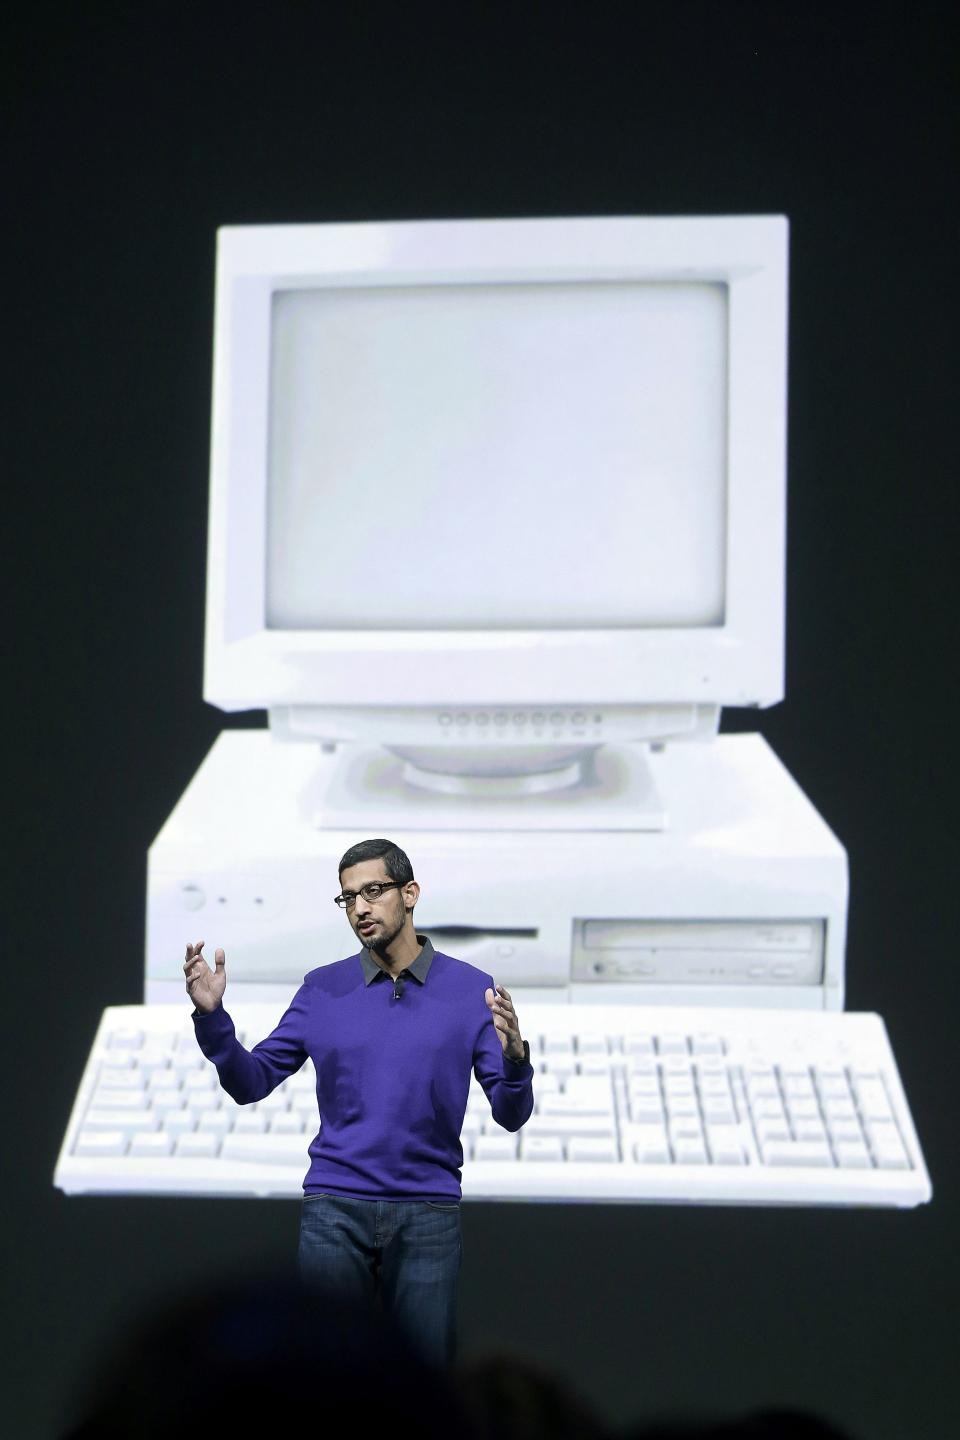 Sundar Pichai, senior vice president, Chrome and Apps at Google, speaks at Google I/O 2013 in San Francisco, Wednesday, May 15, 2013. (AP Photo/Jeff Chiu)